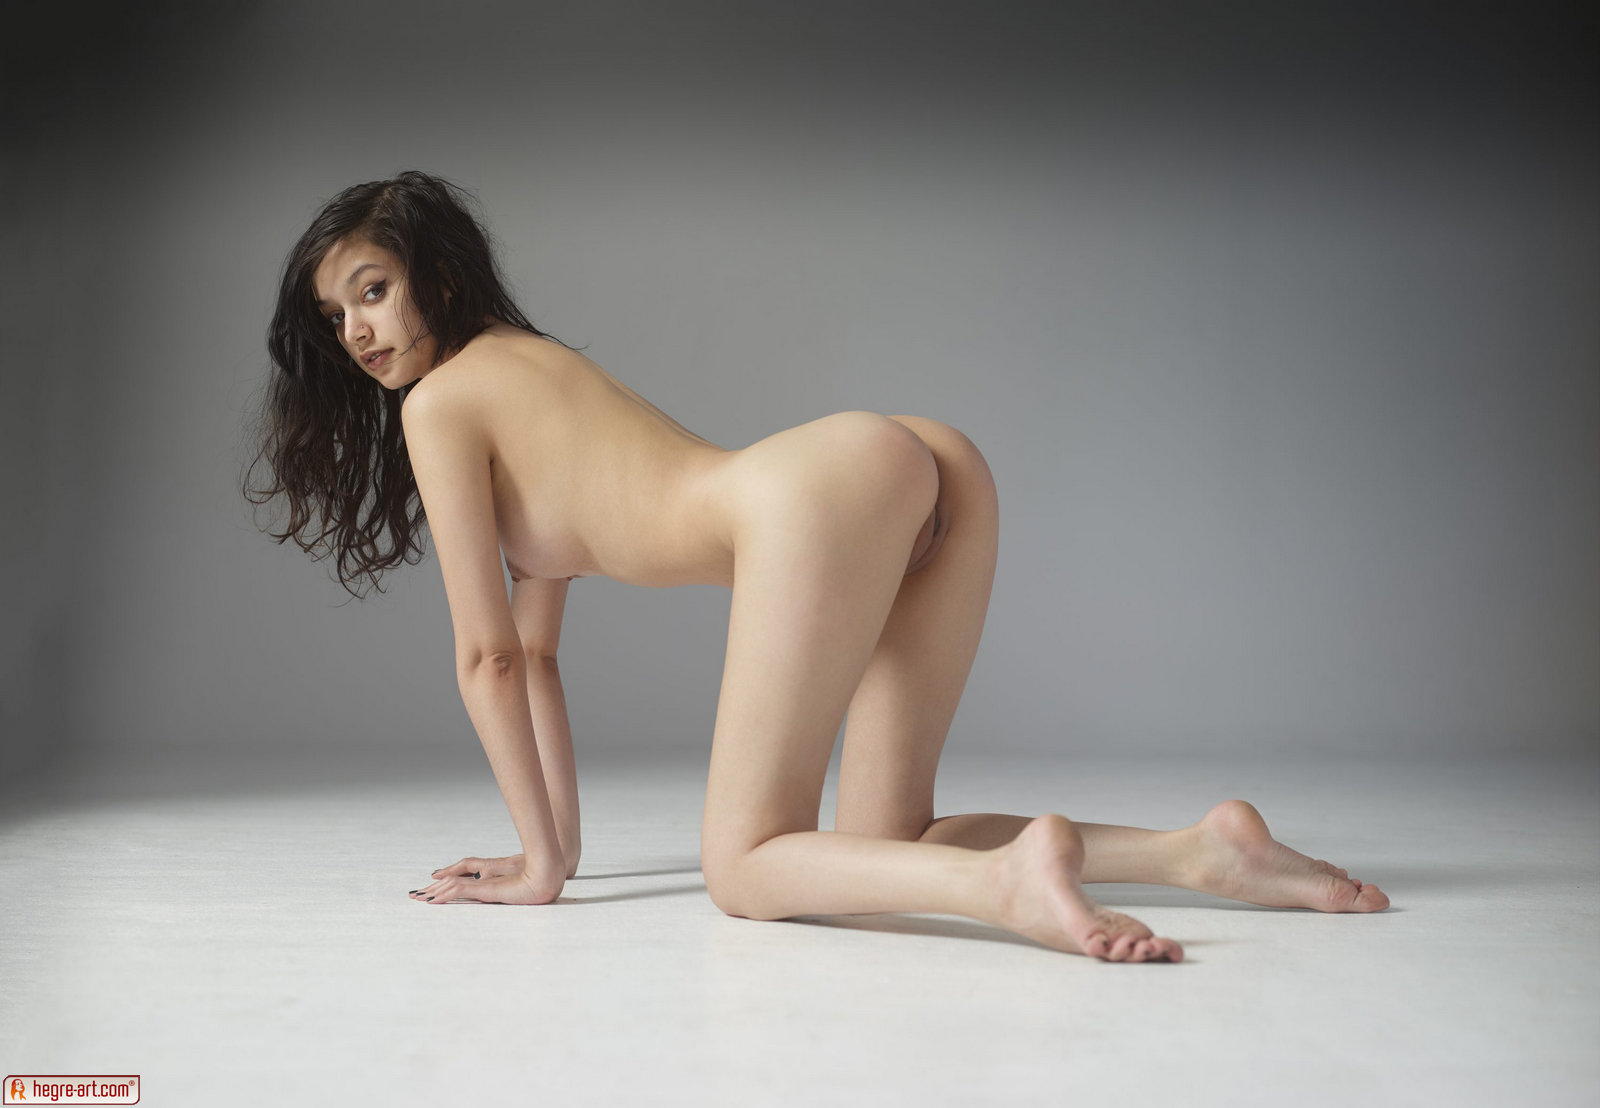 sexiest playmates in nude